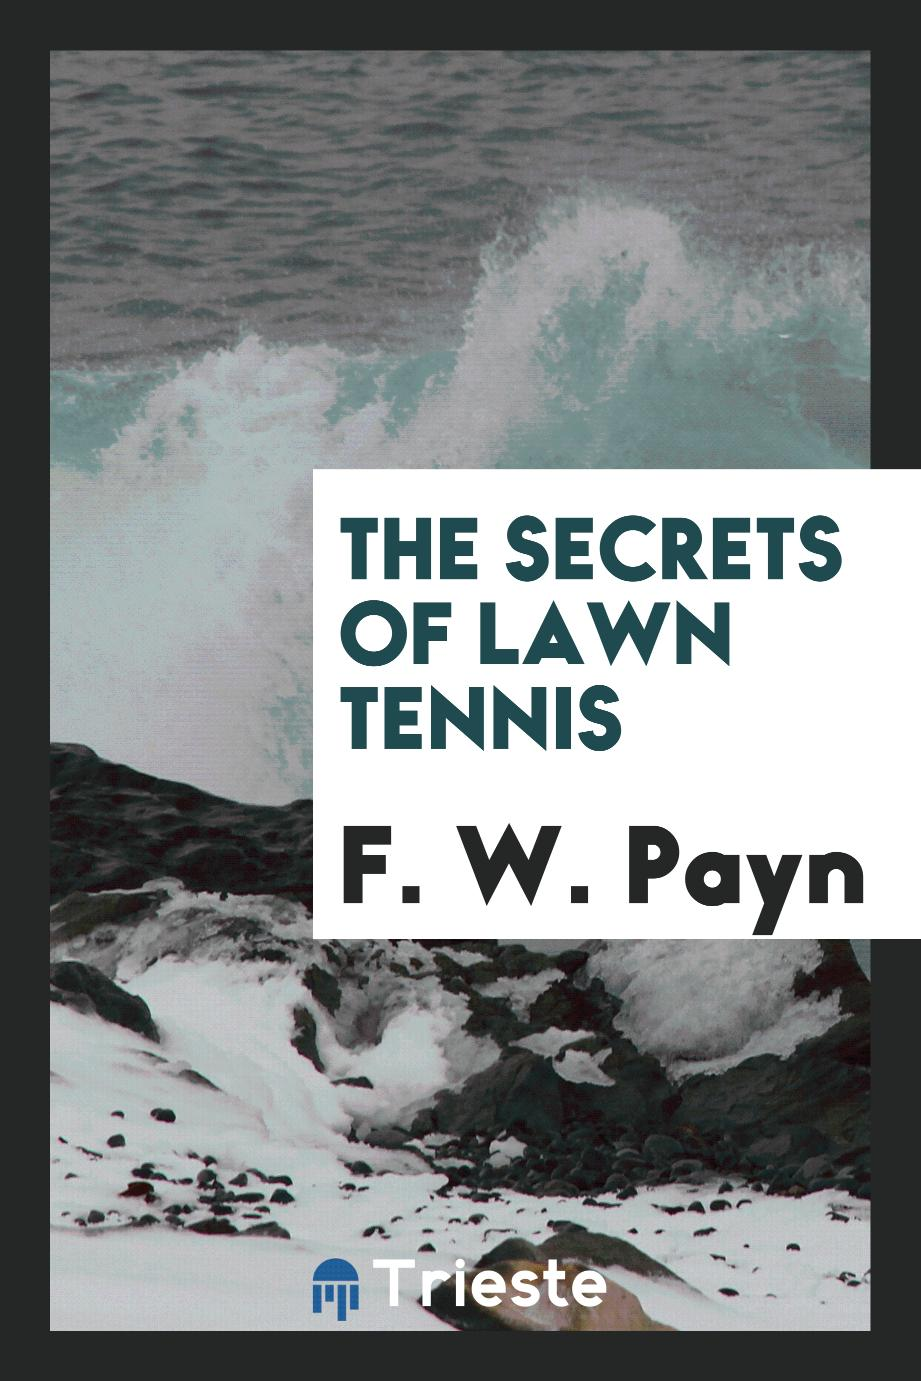 The Secrets of Lawn Tennis